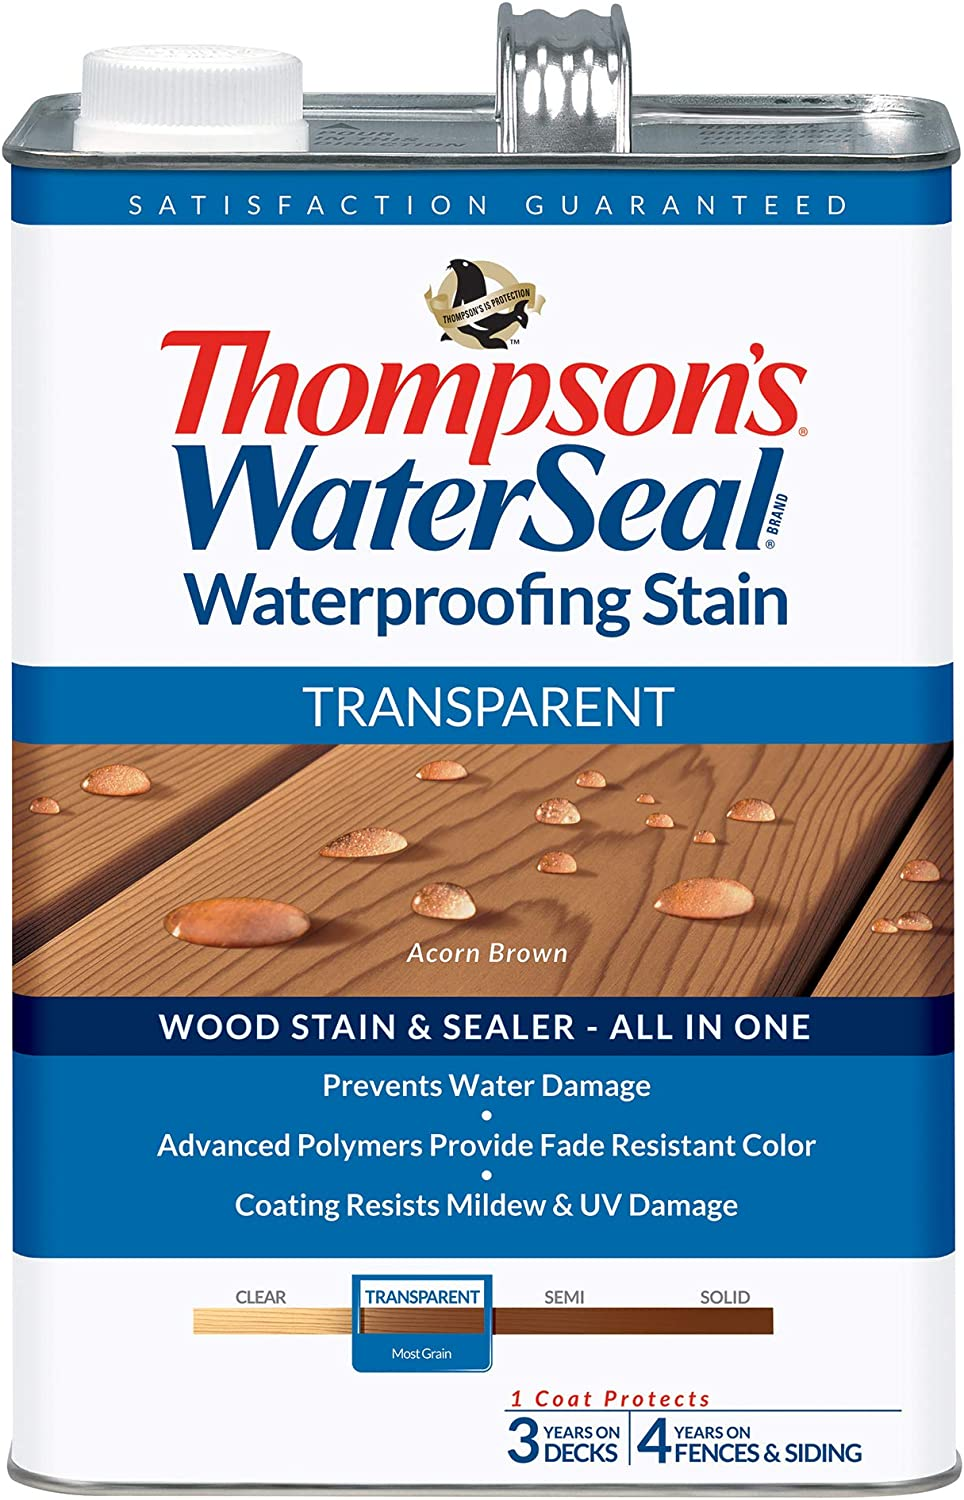 THOMPSONS WATERSEAL TH.041841-16 Transparent Waterproofing Stain, Acorn Brown